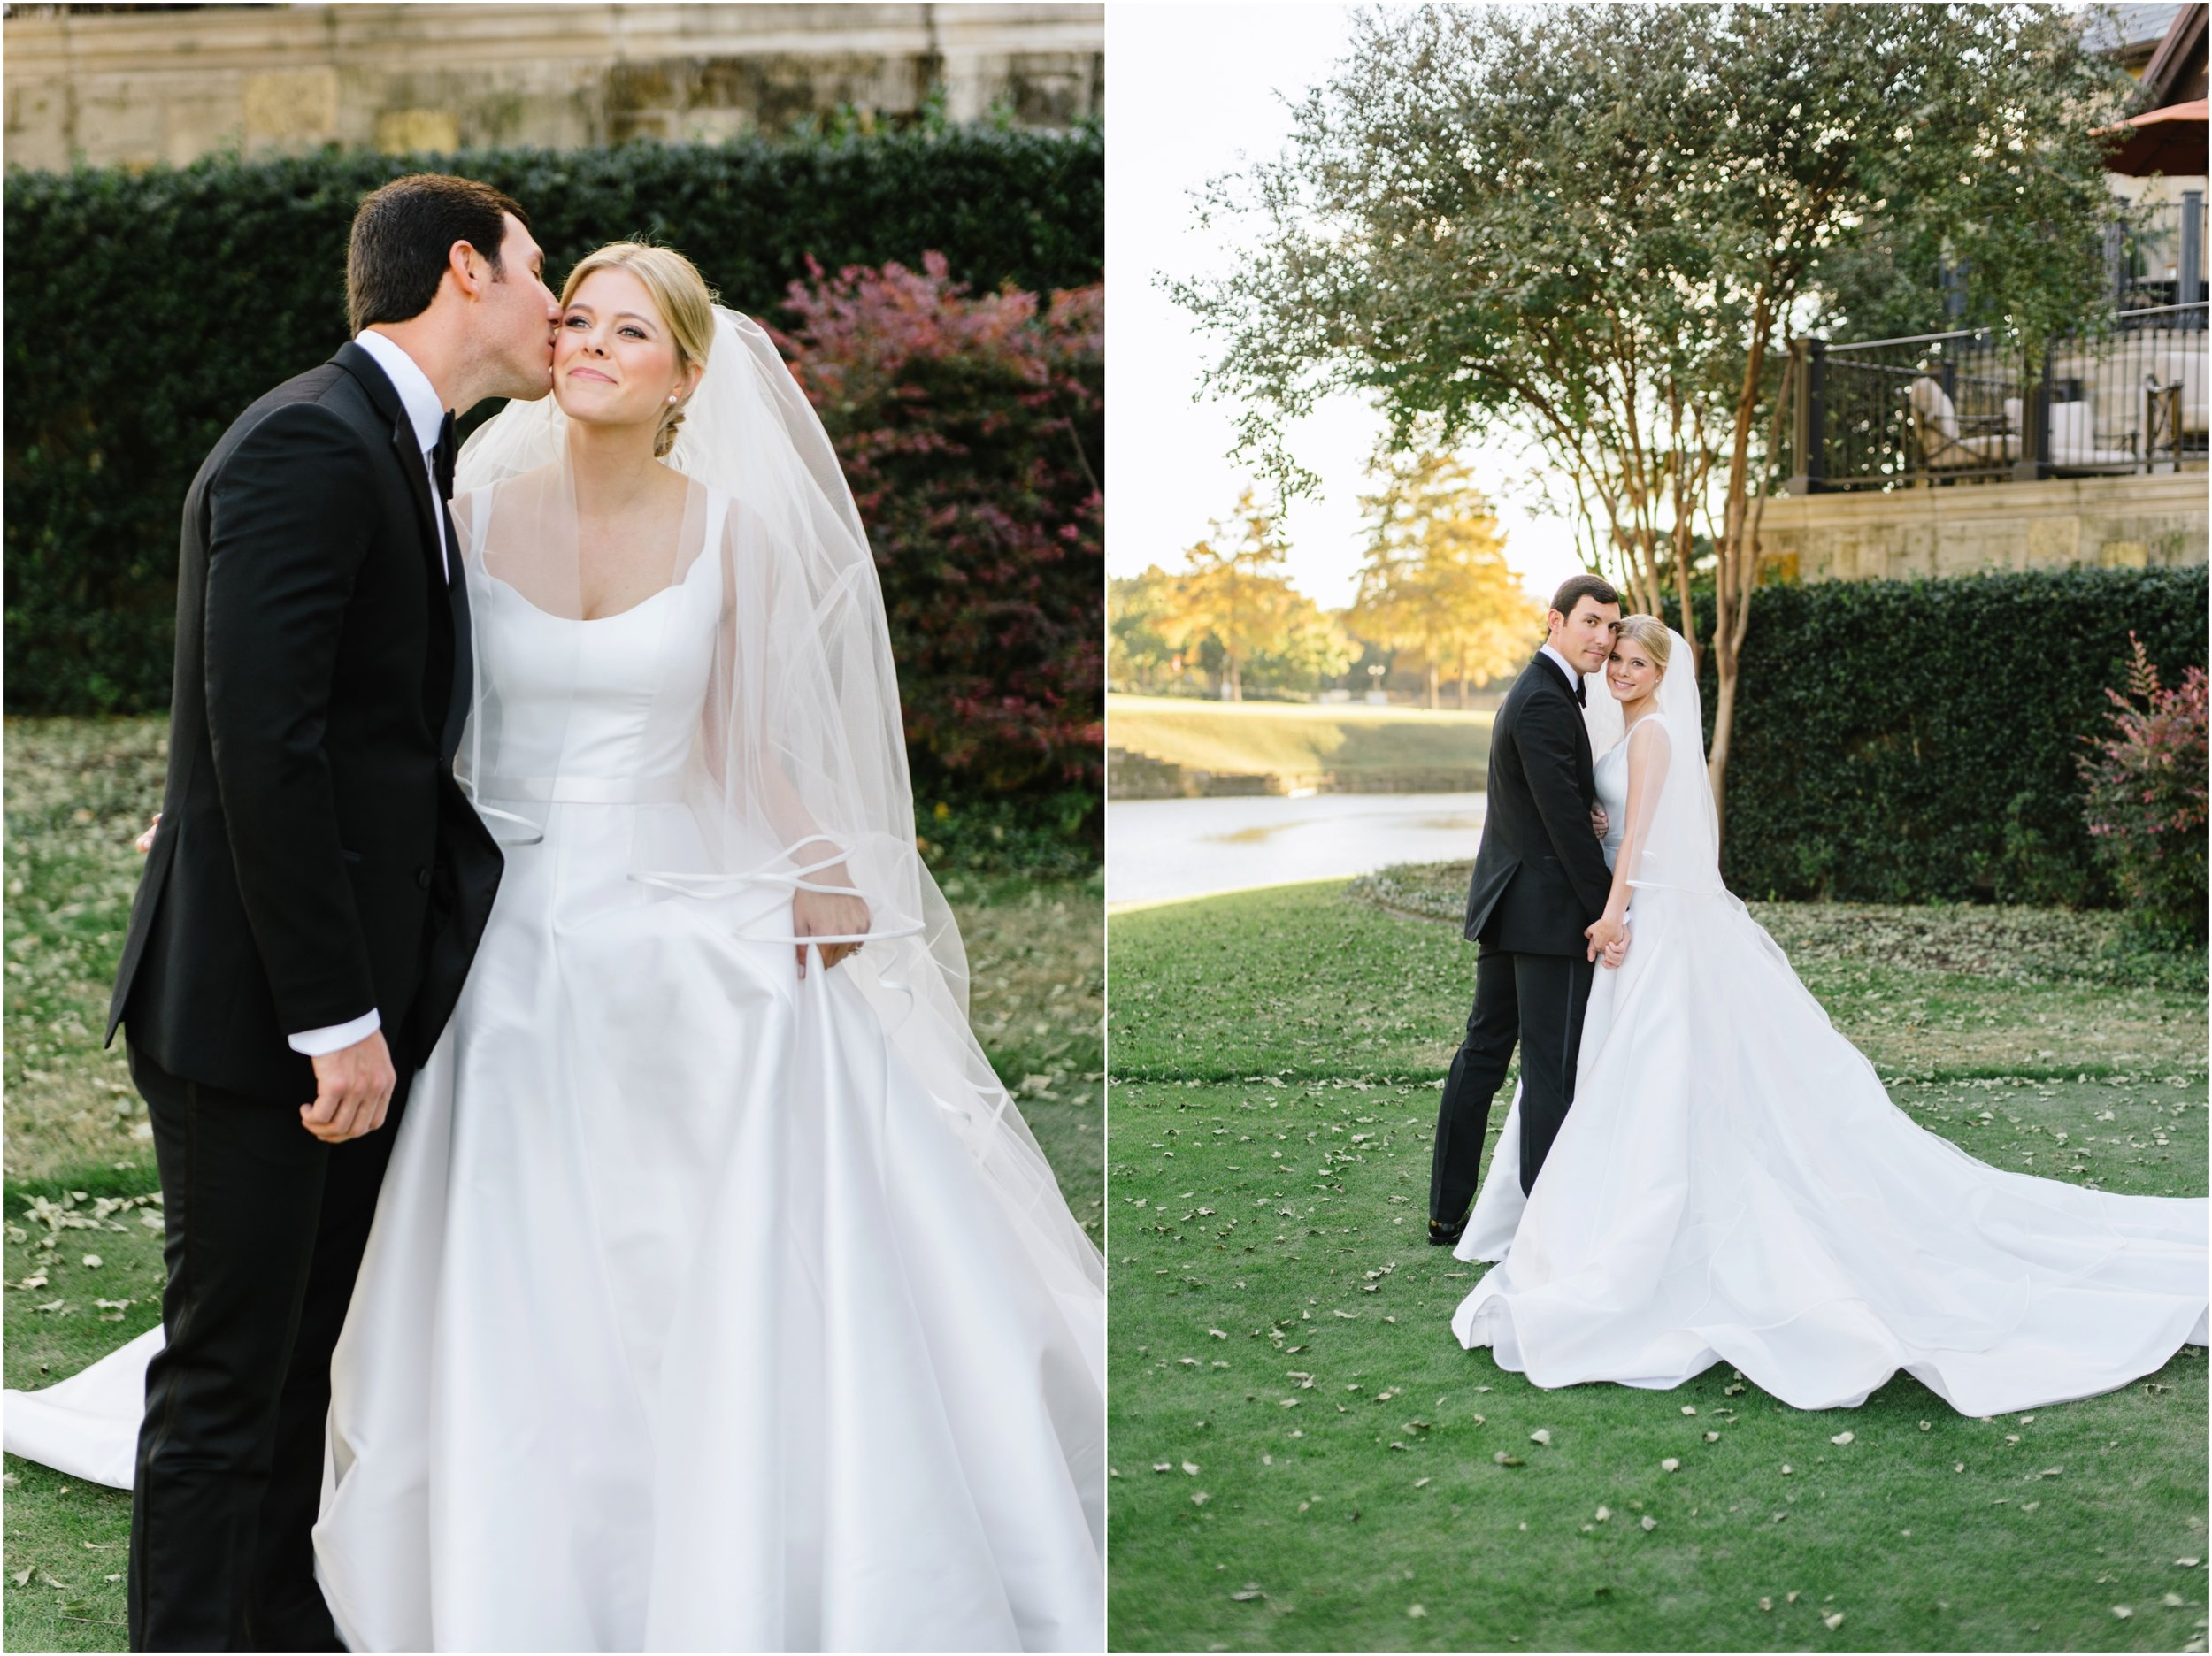 dallasweddingphotographer_DallasCountryClub_Hannah+Matthew_0020.jpg